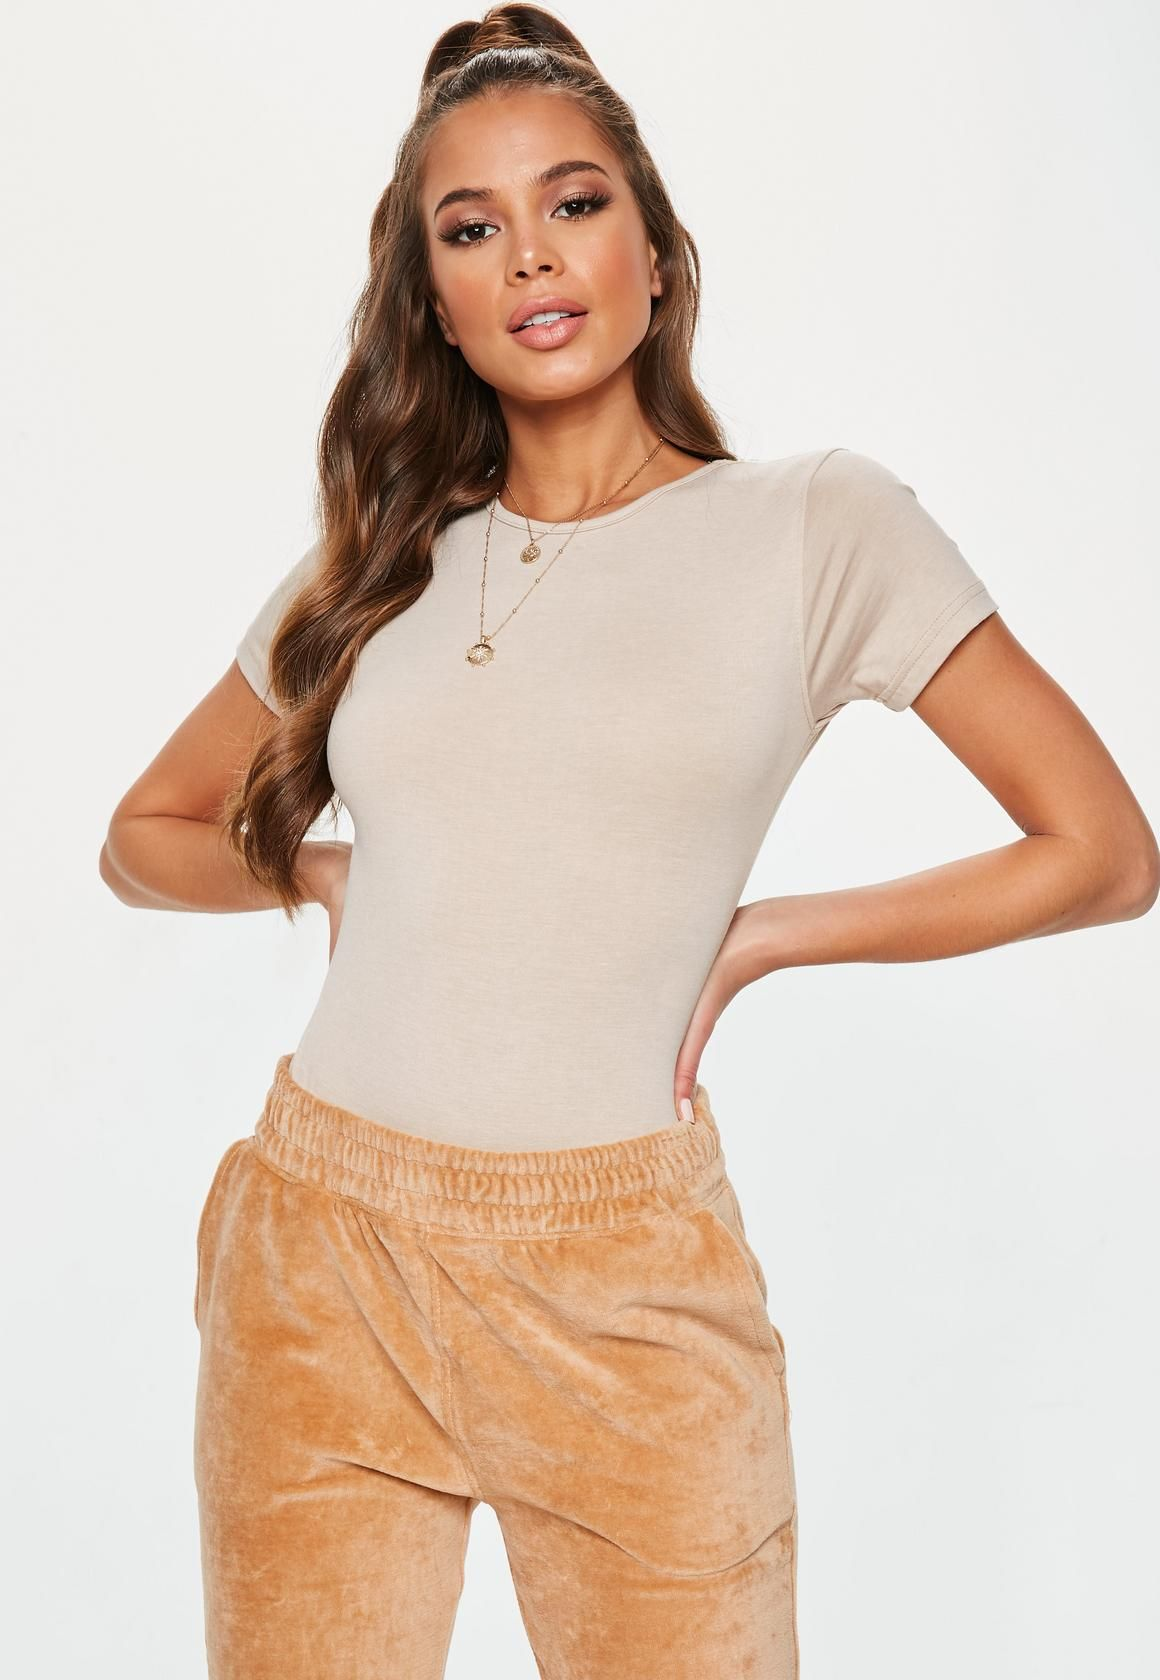 aabab10d873e9 Missguided - Nude Crew Neck Bodysuit